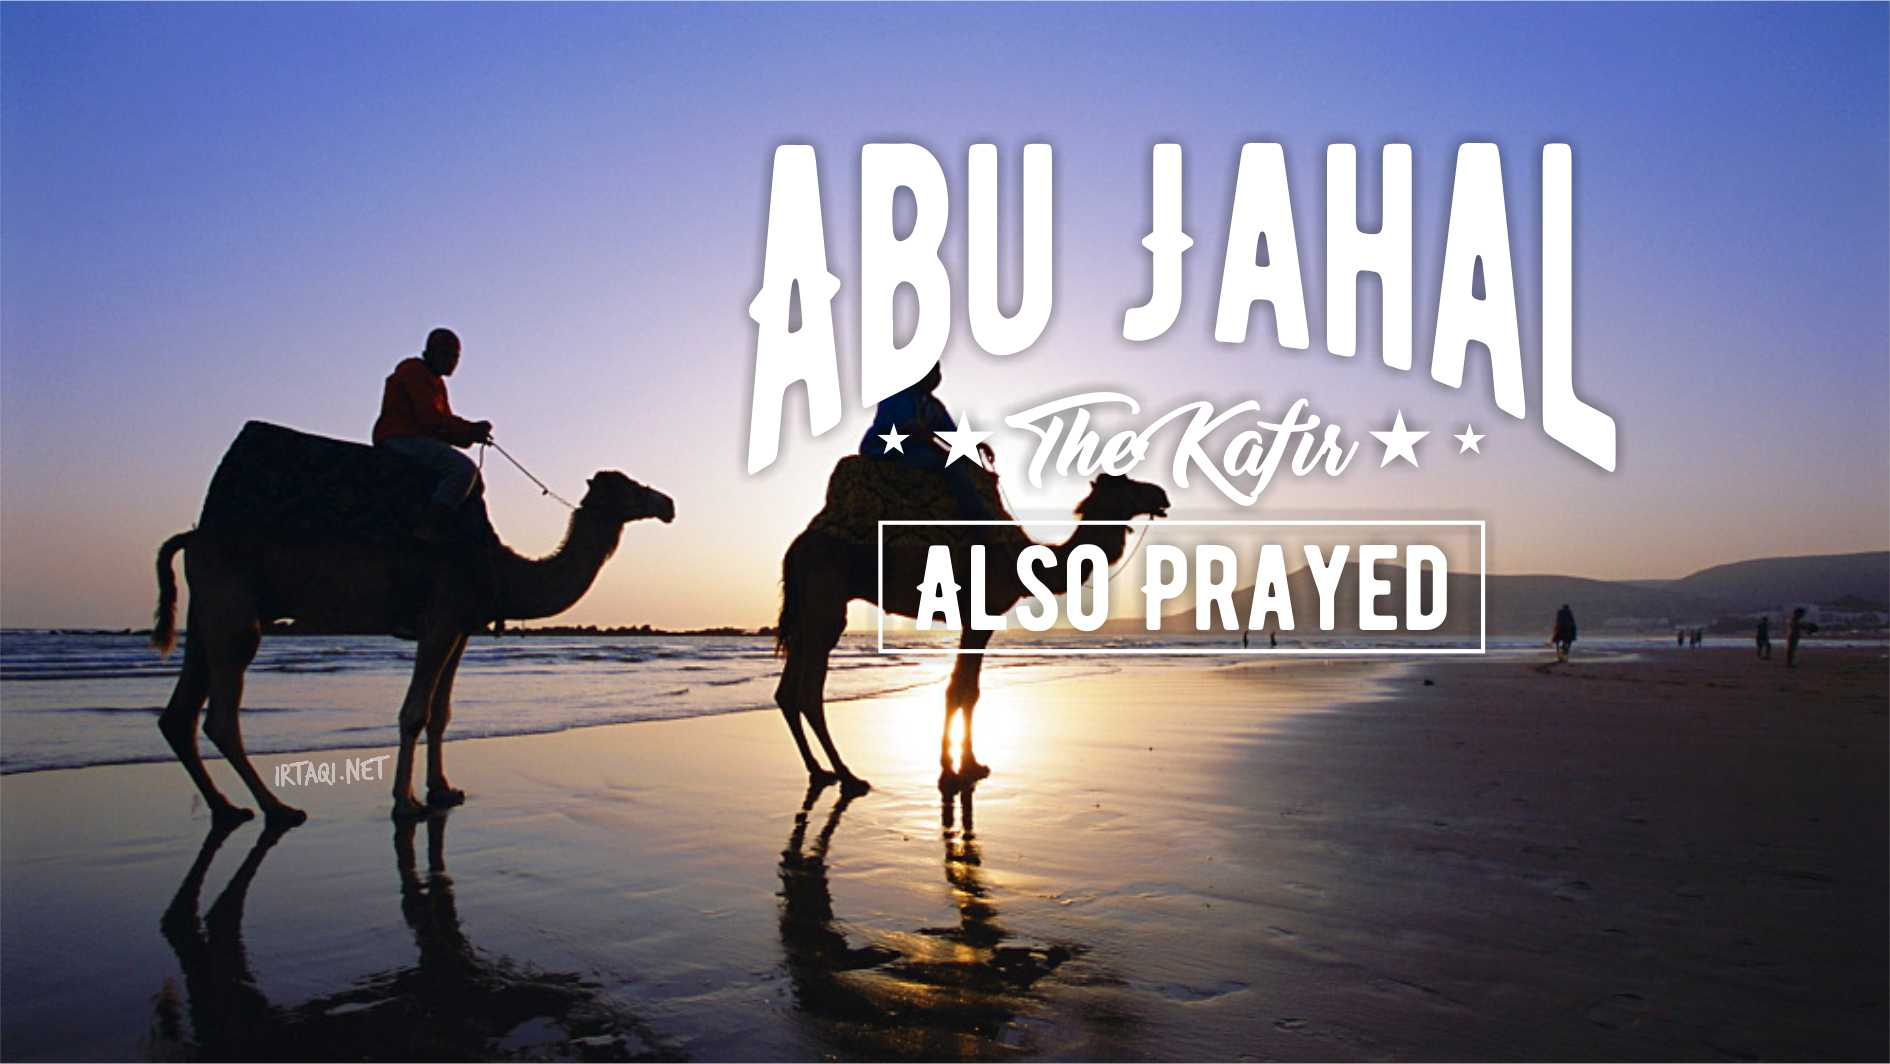 ABU JAHAL, THE KAFIR, ALSO PRAYED